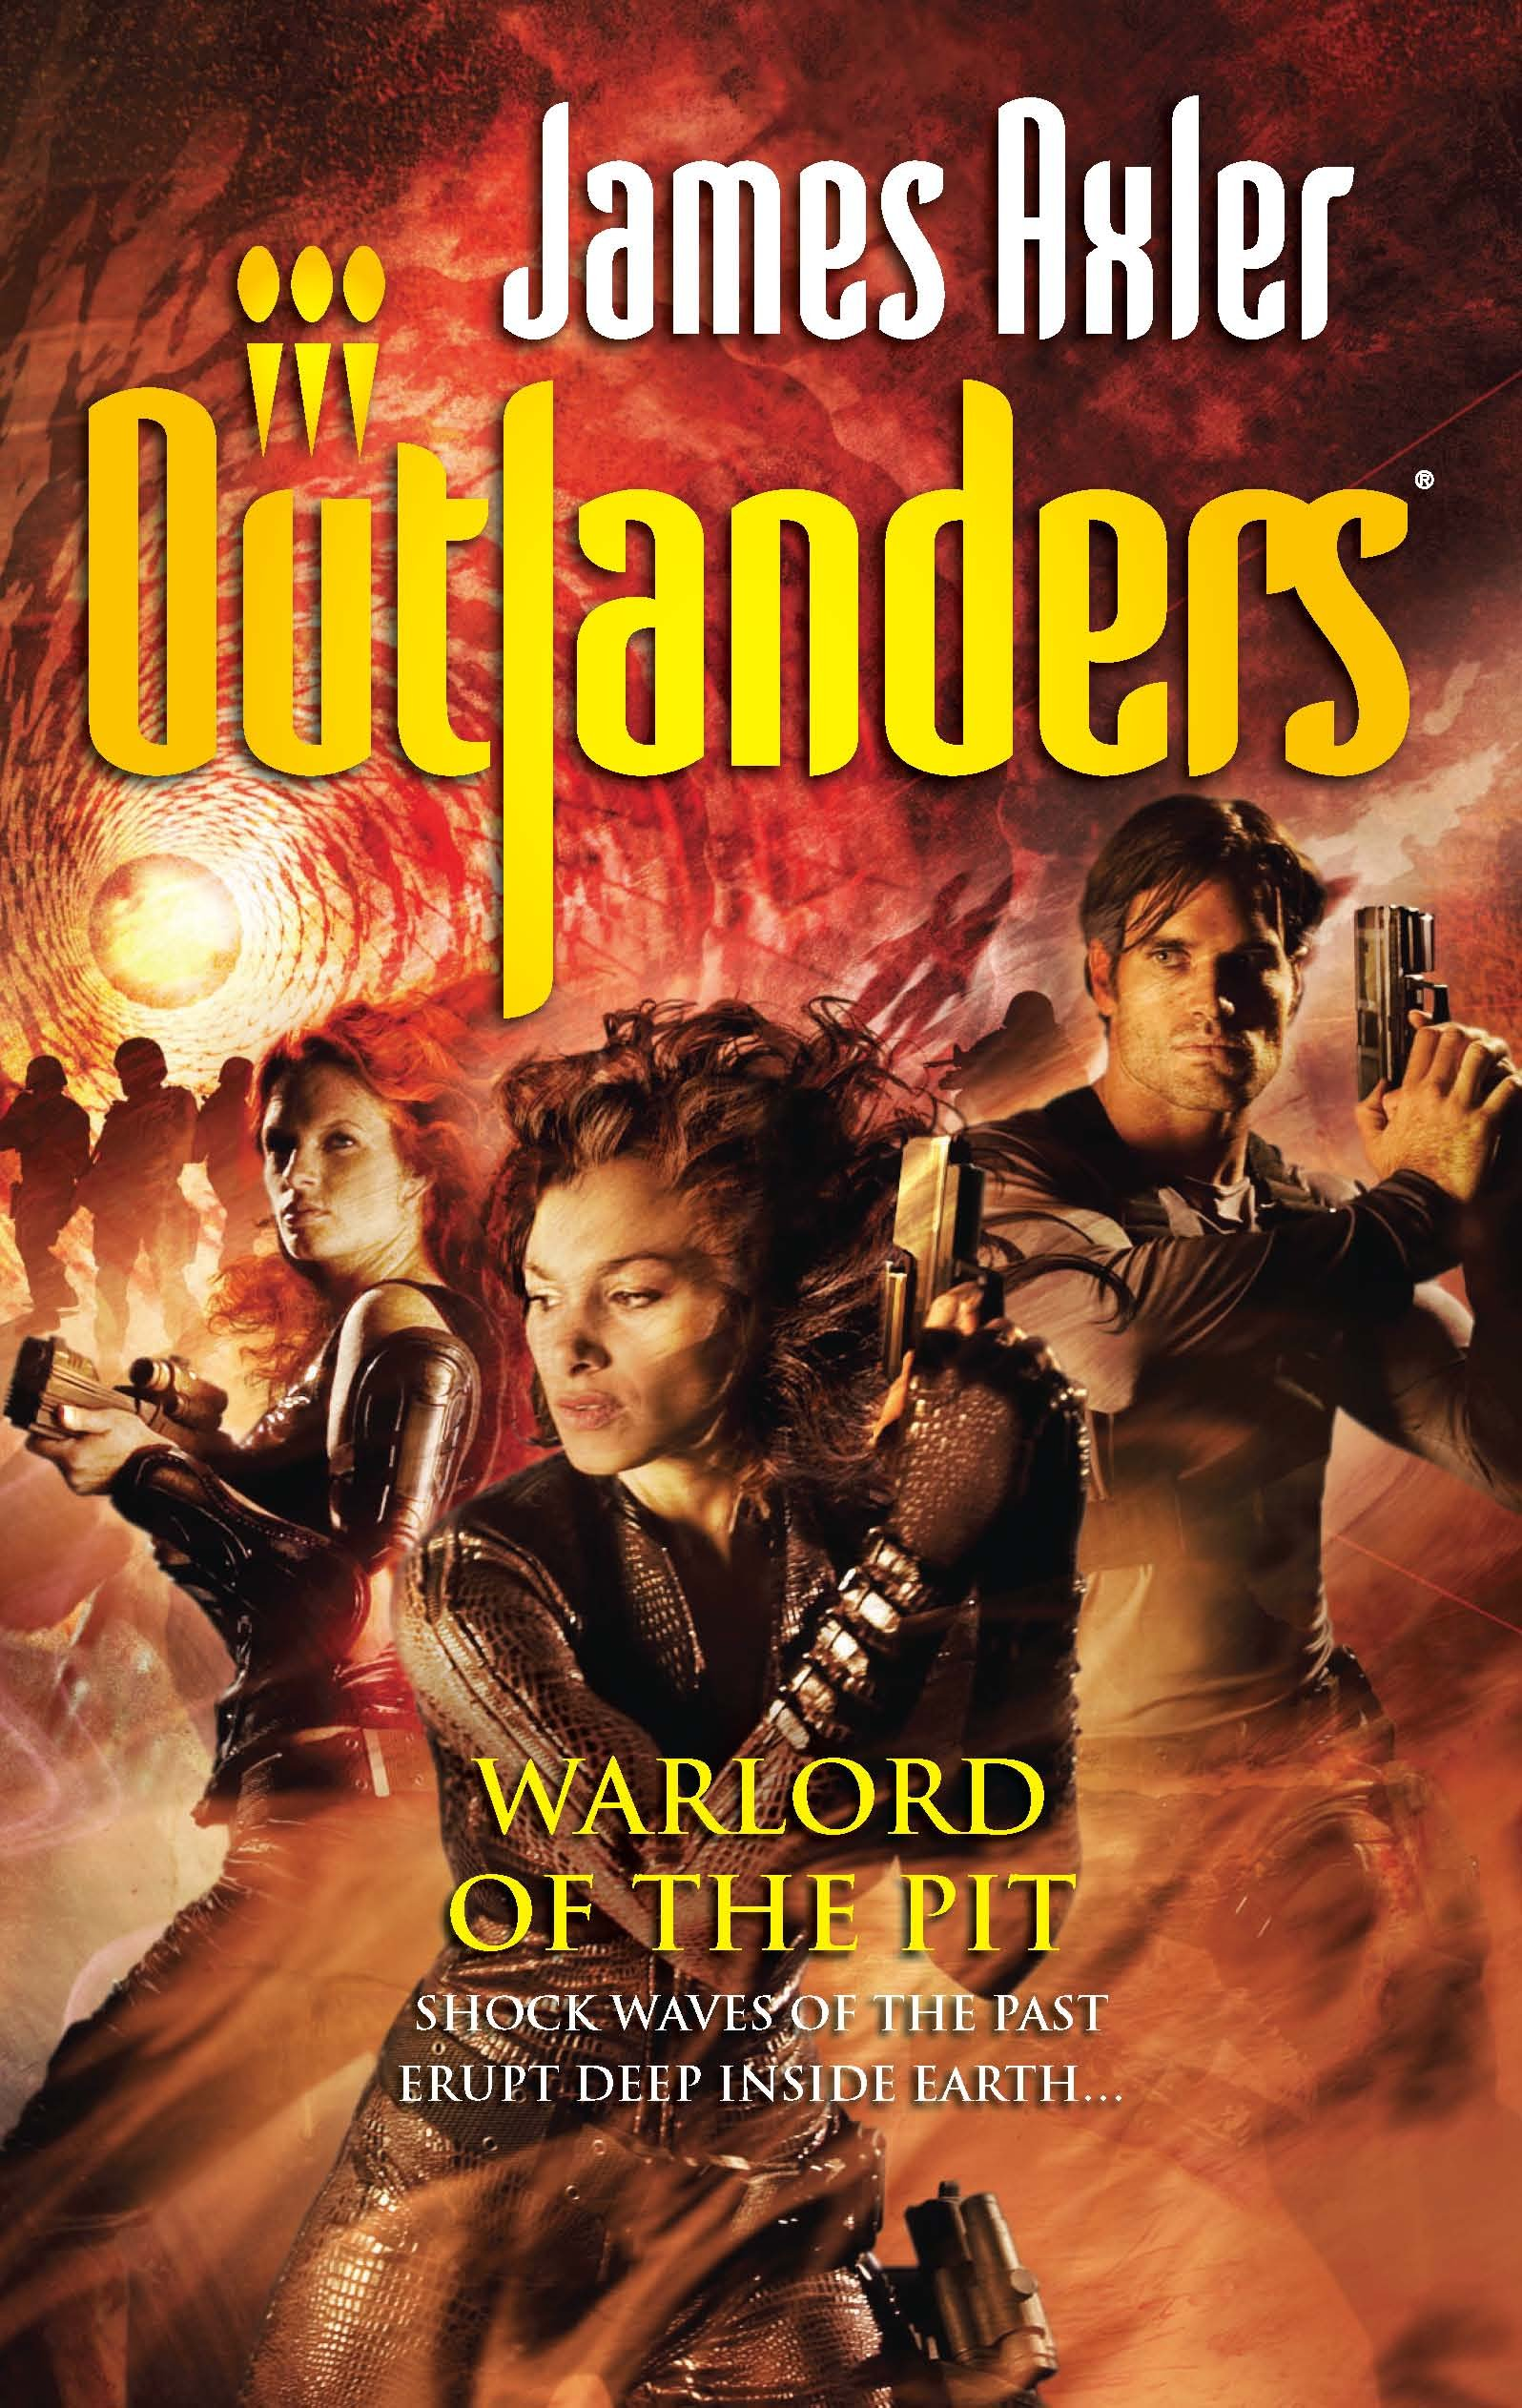 Amazon.com: Warlord of the Pit (Outlanders) (9780373638642): James Axler:  Books